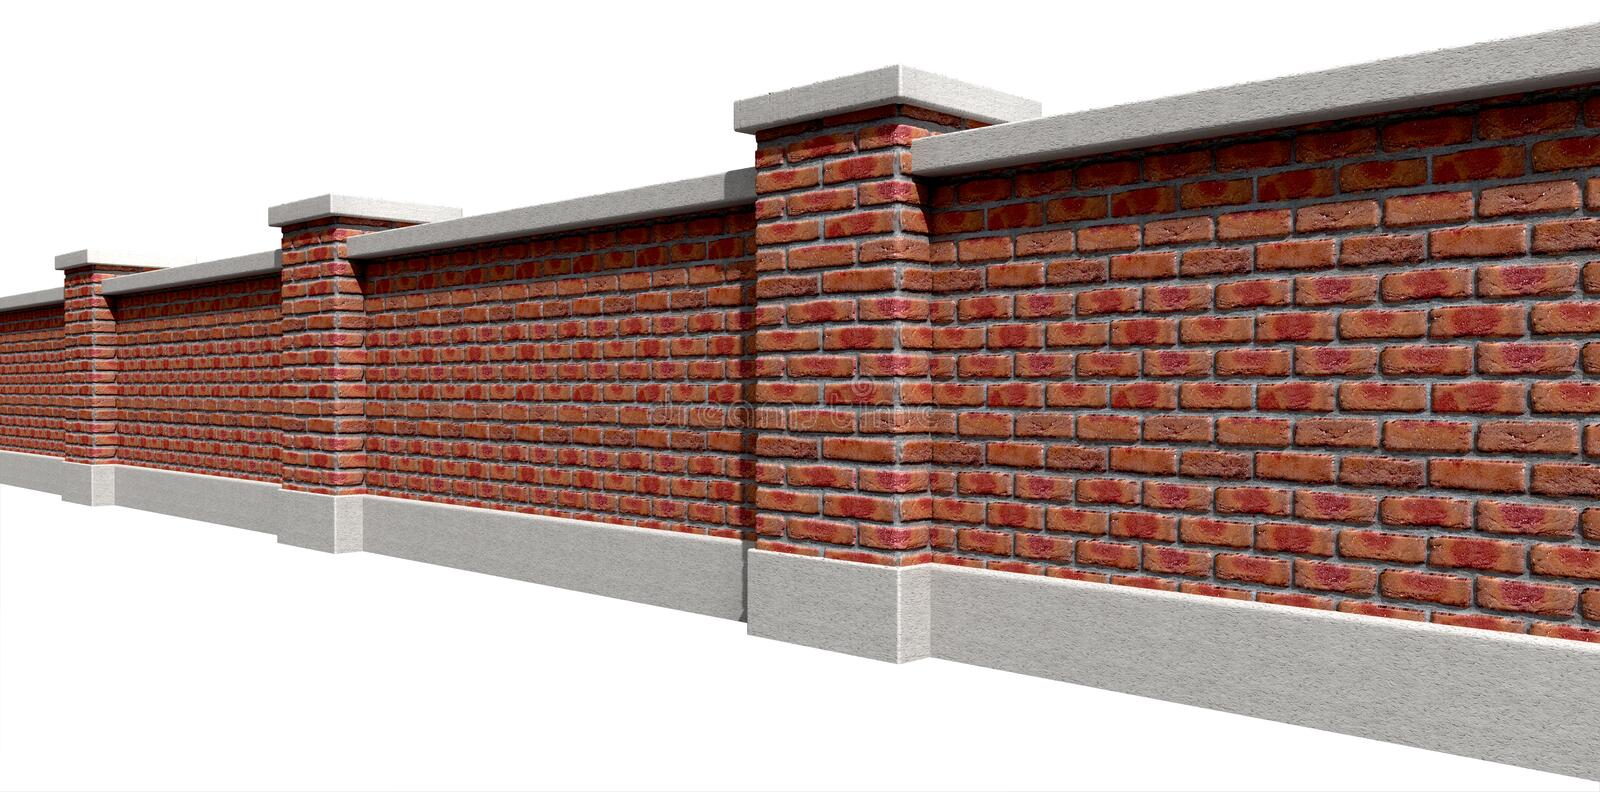 Facebrick Wall Photos Free Royalty Free Stock Photos From Dreamstime